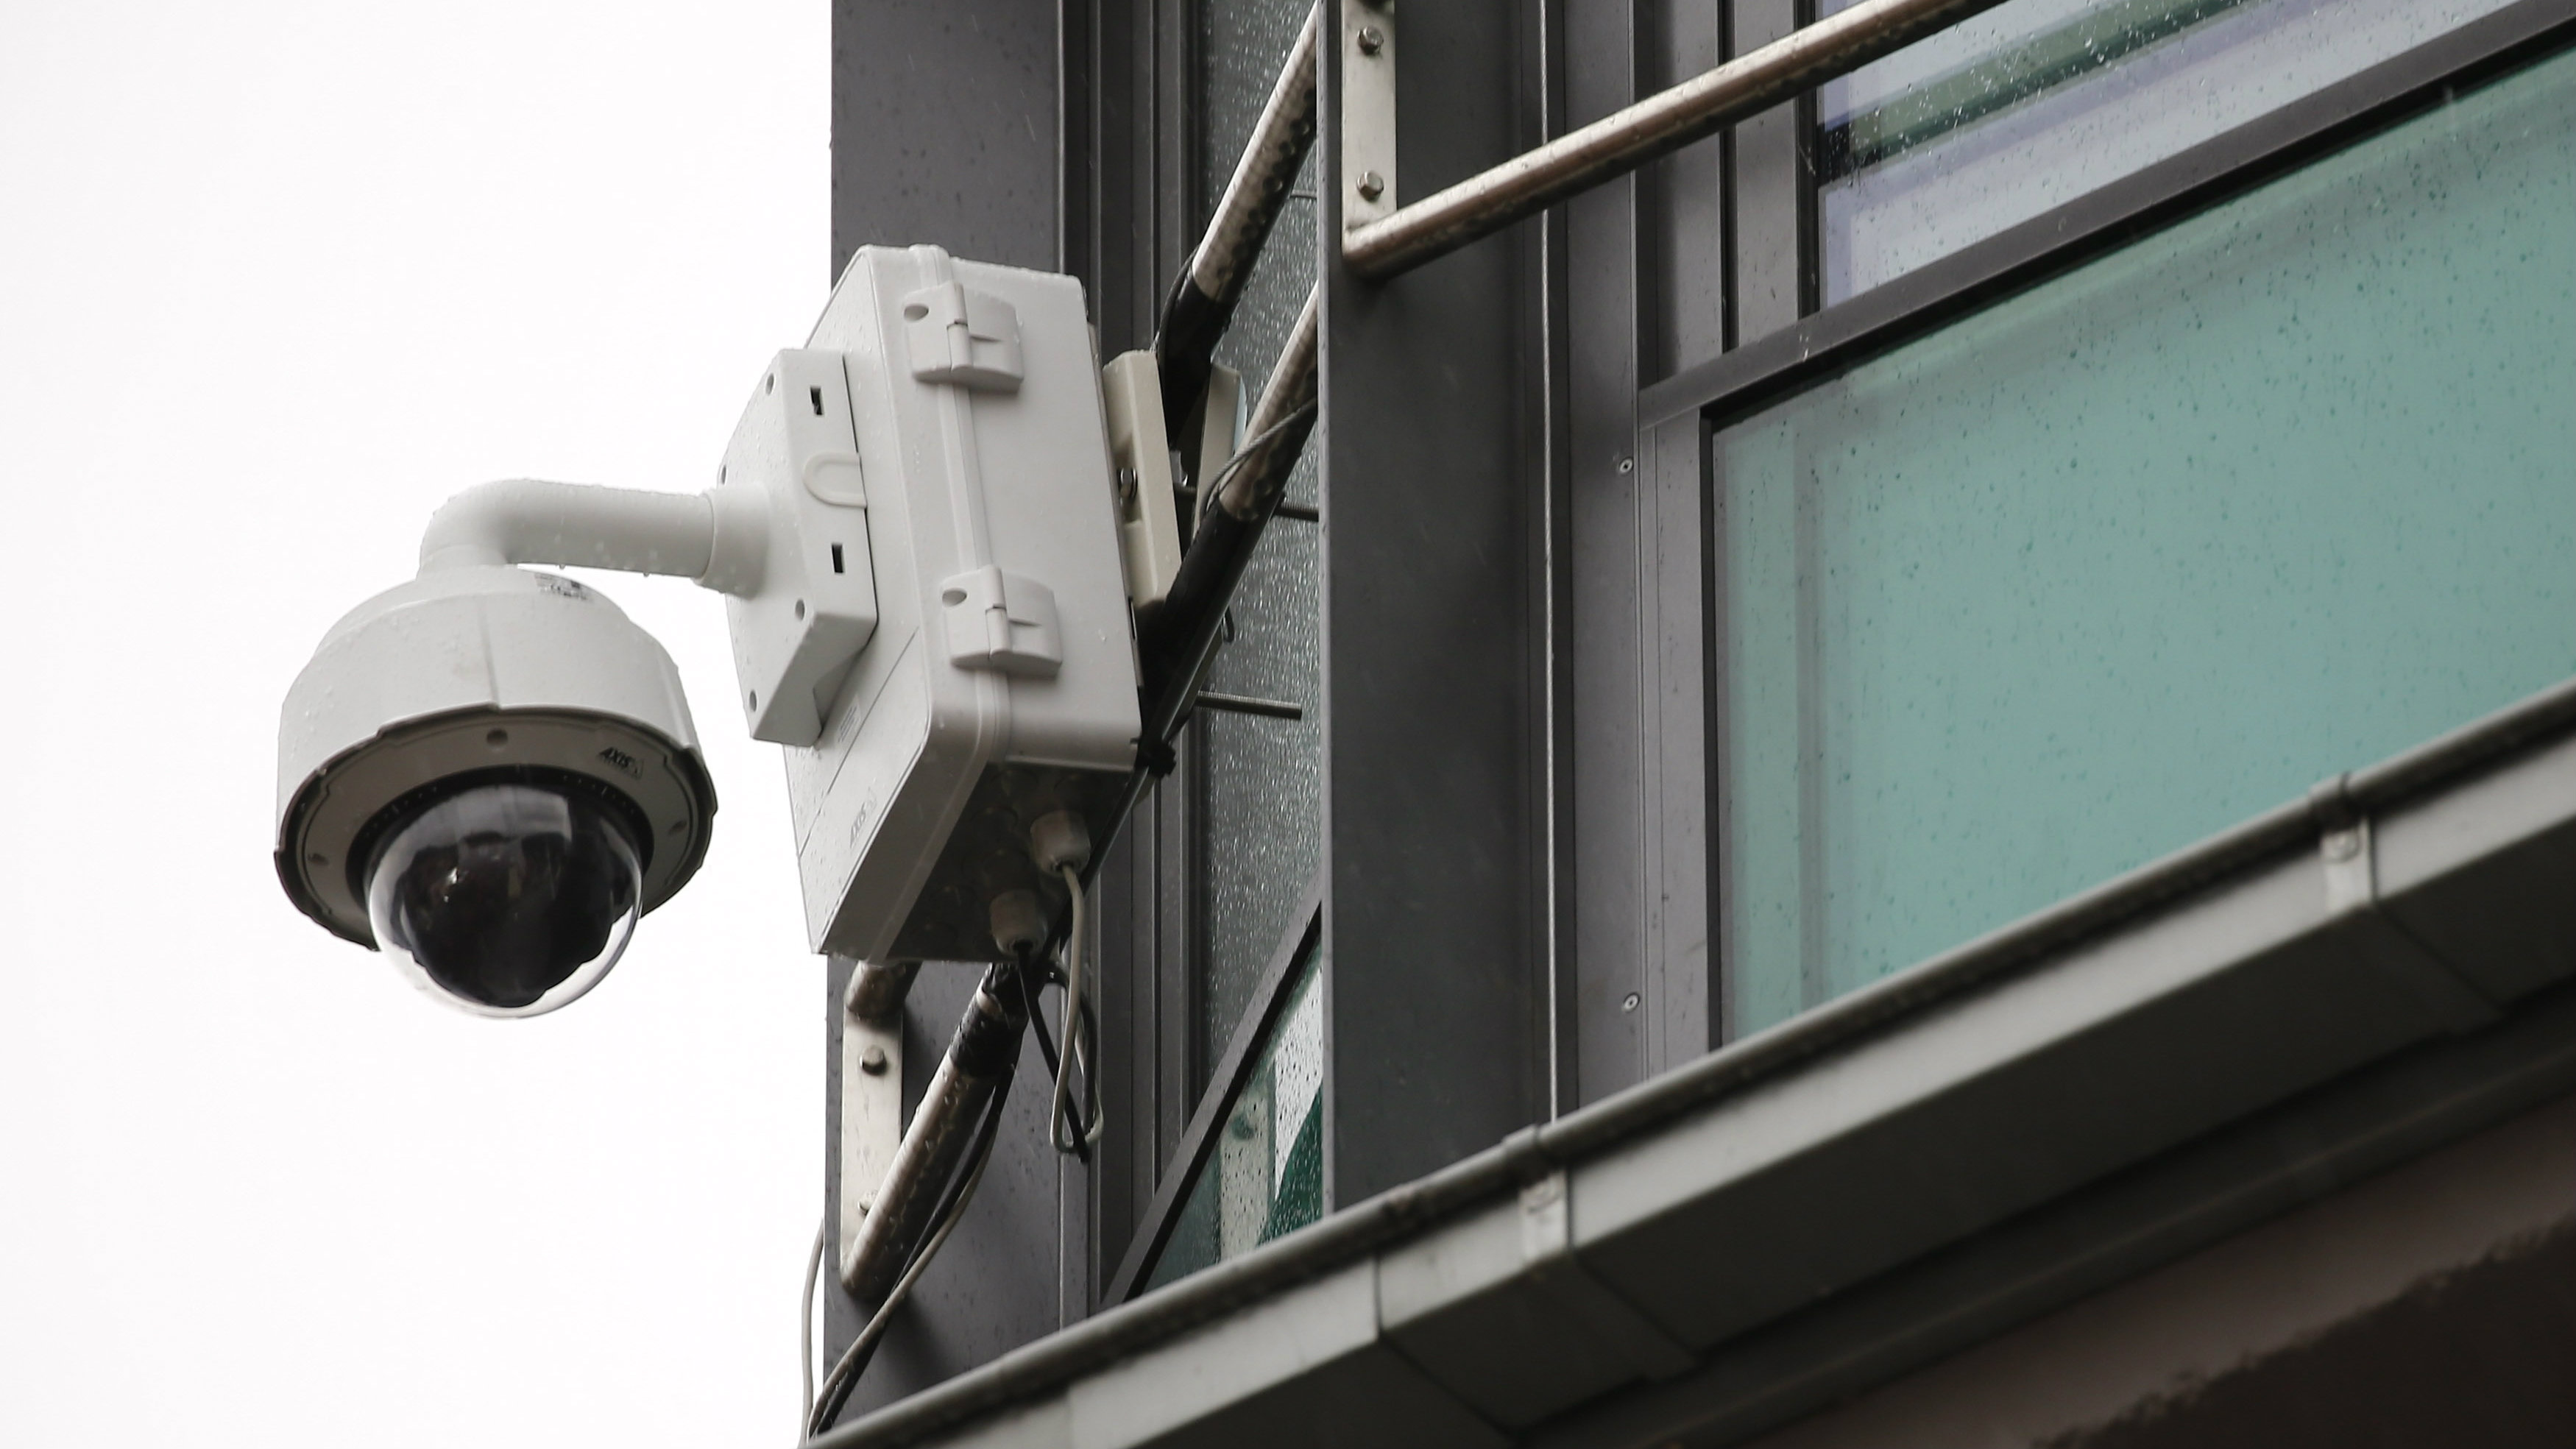 """A surveillance camera is seen on the side of a building during """"Weiberfastnacht"""" (Women's Carnival) celebrations in Mainz, Germany, February 4, 2016. Germany is celebrating its traditional carnival with tight security after assaults on women during New Year's Eve celebrations across the country. REUTERS/Kai Pfaffenbach"""